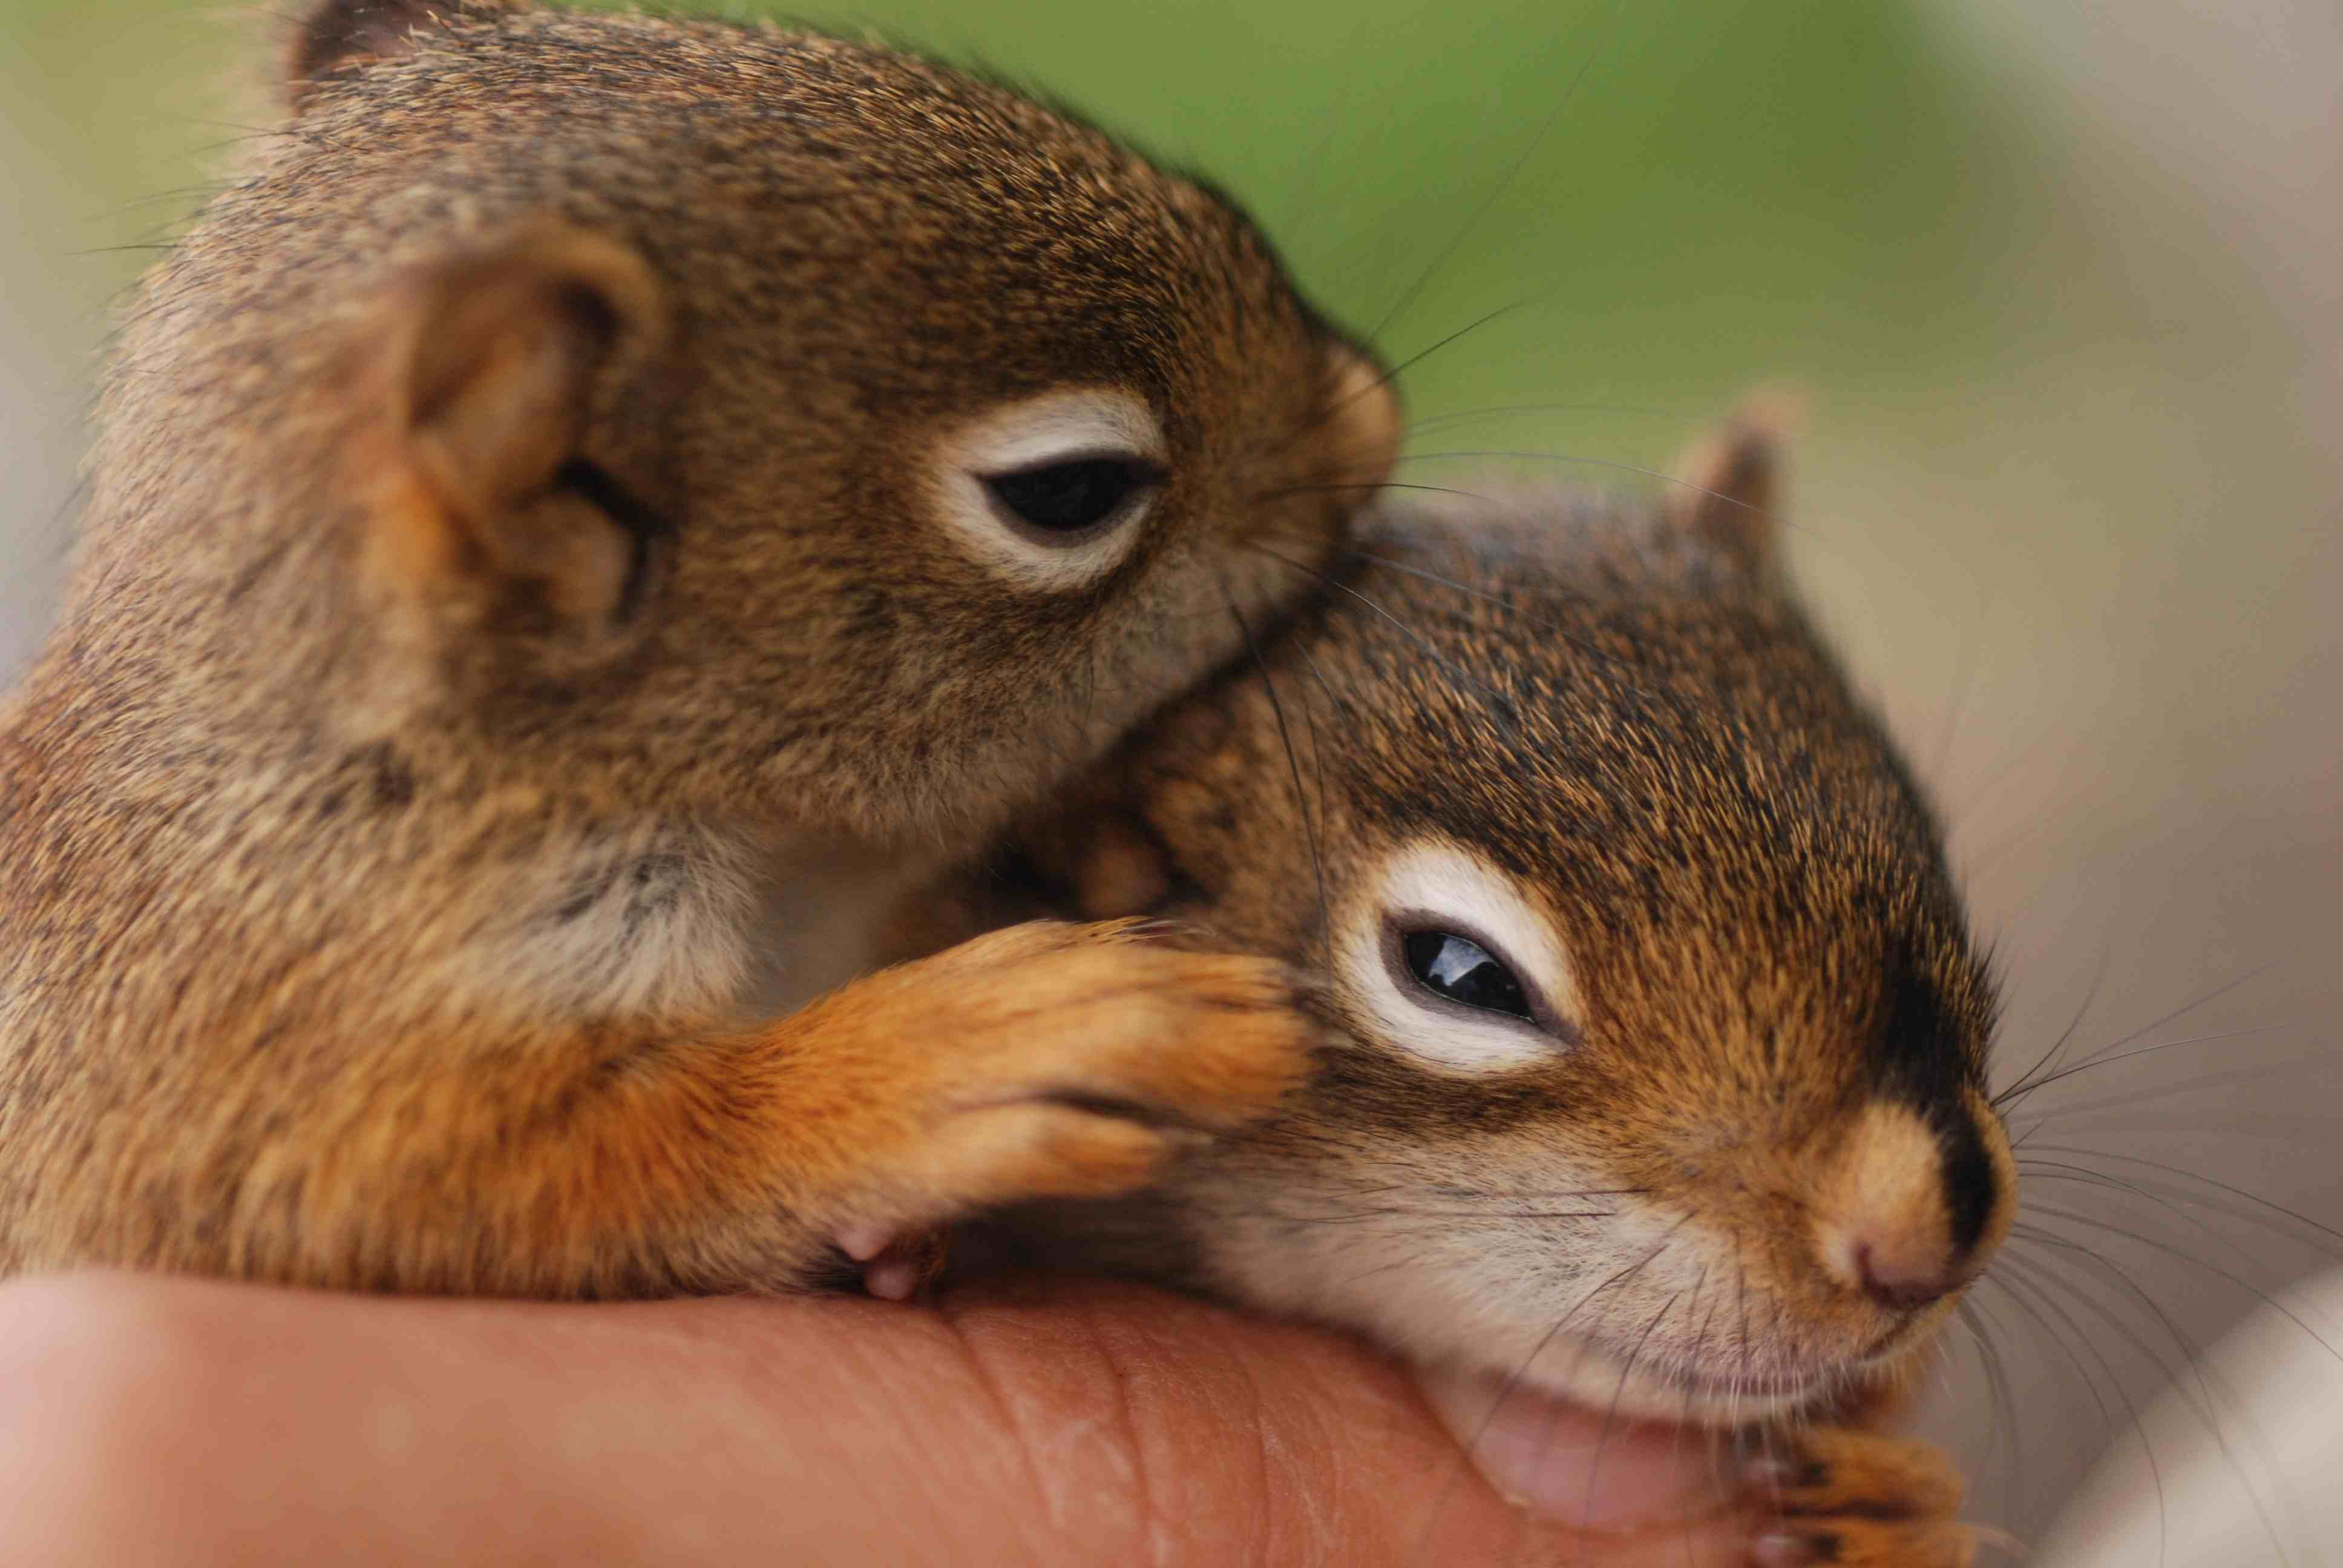 Cute Squirrels will still be room for cute baby